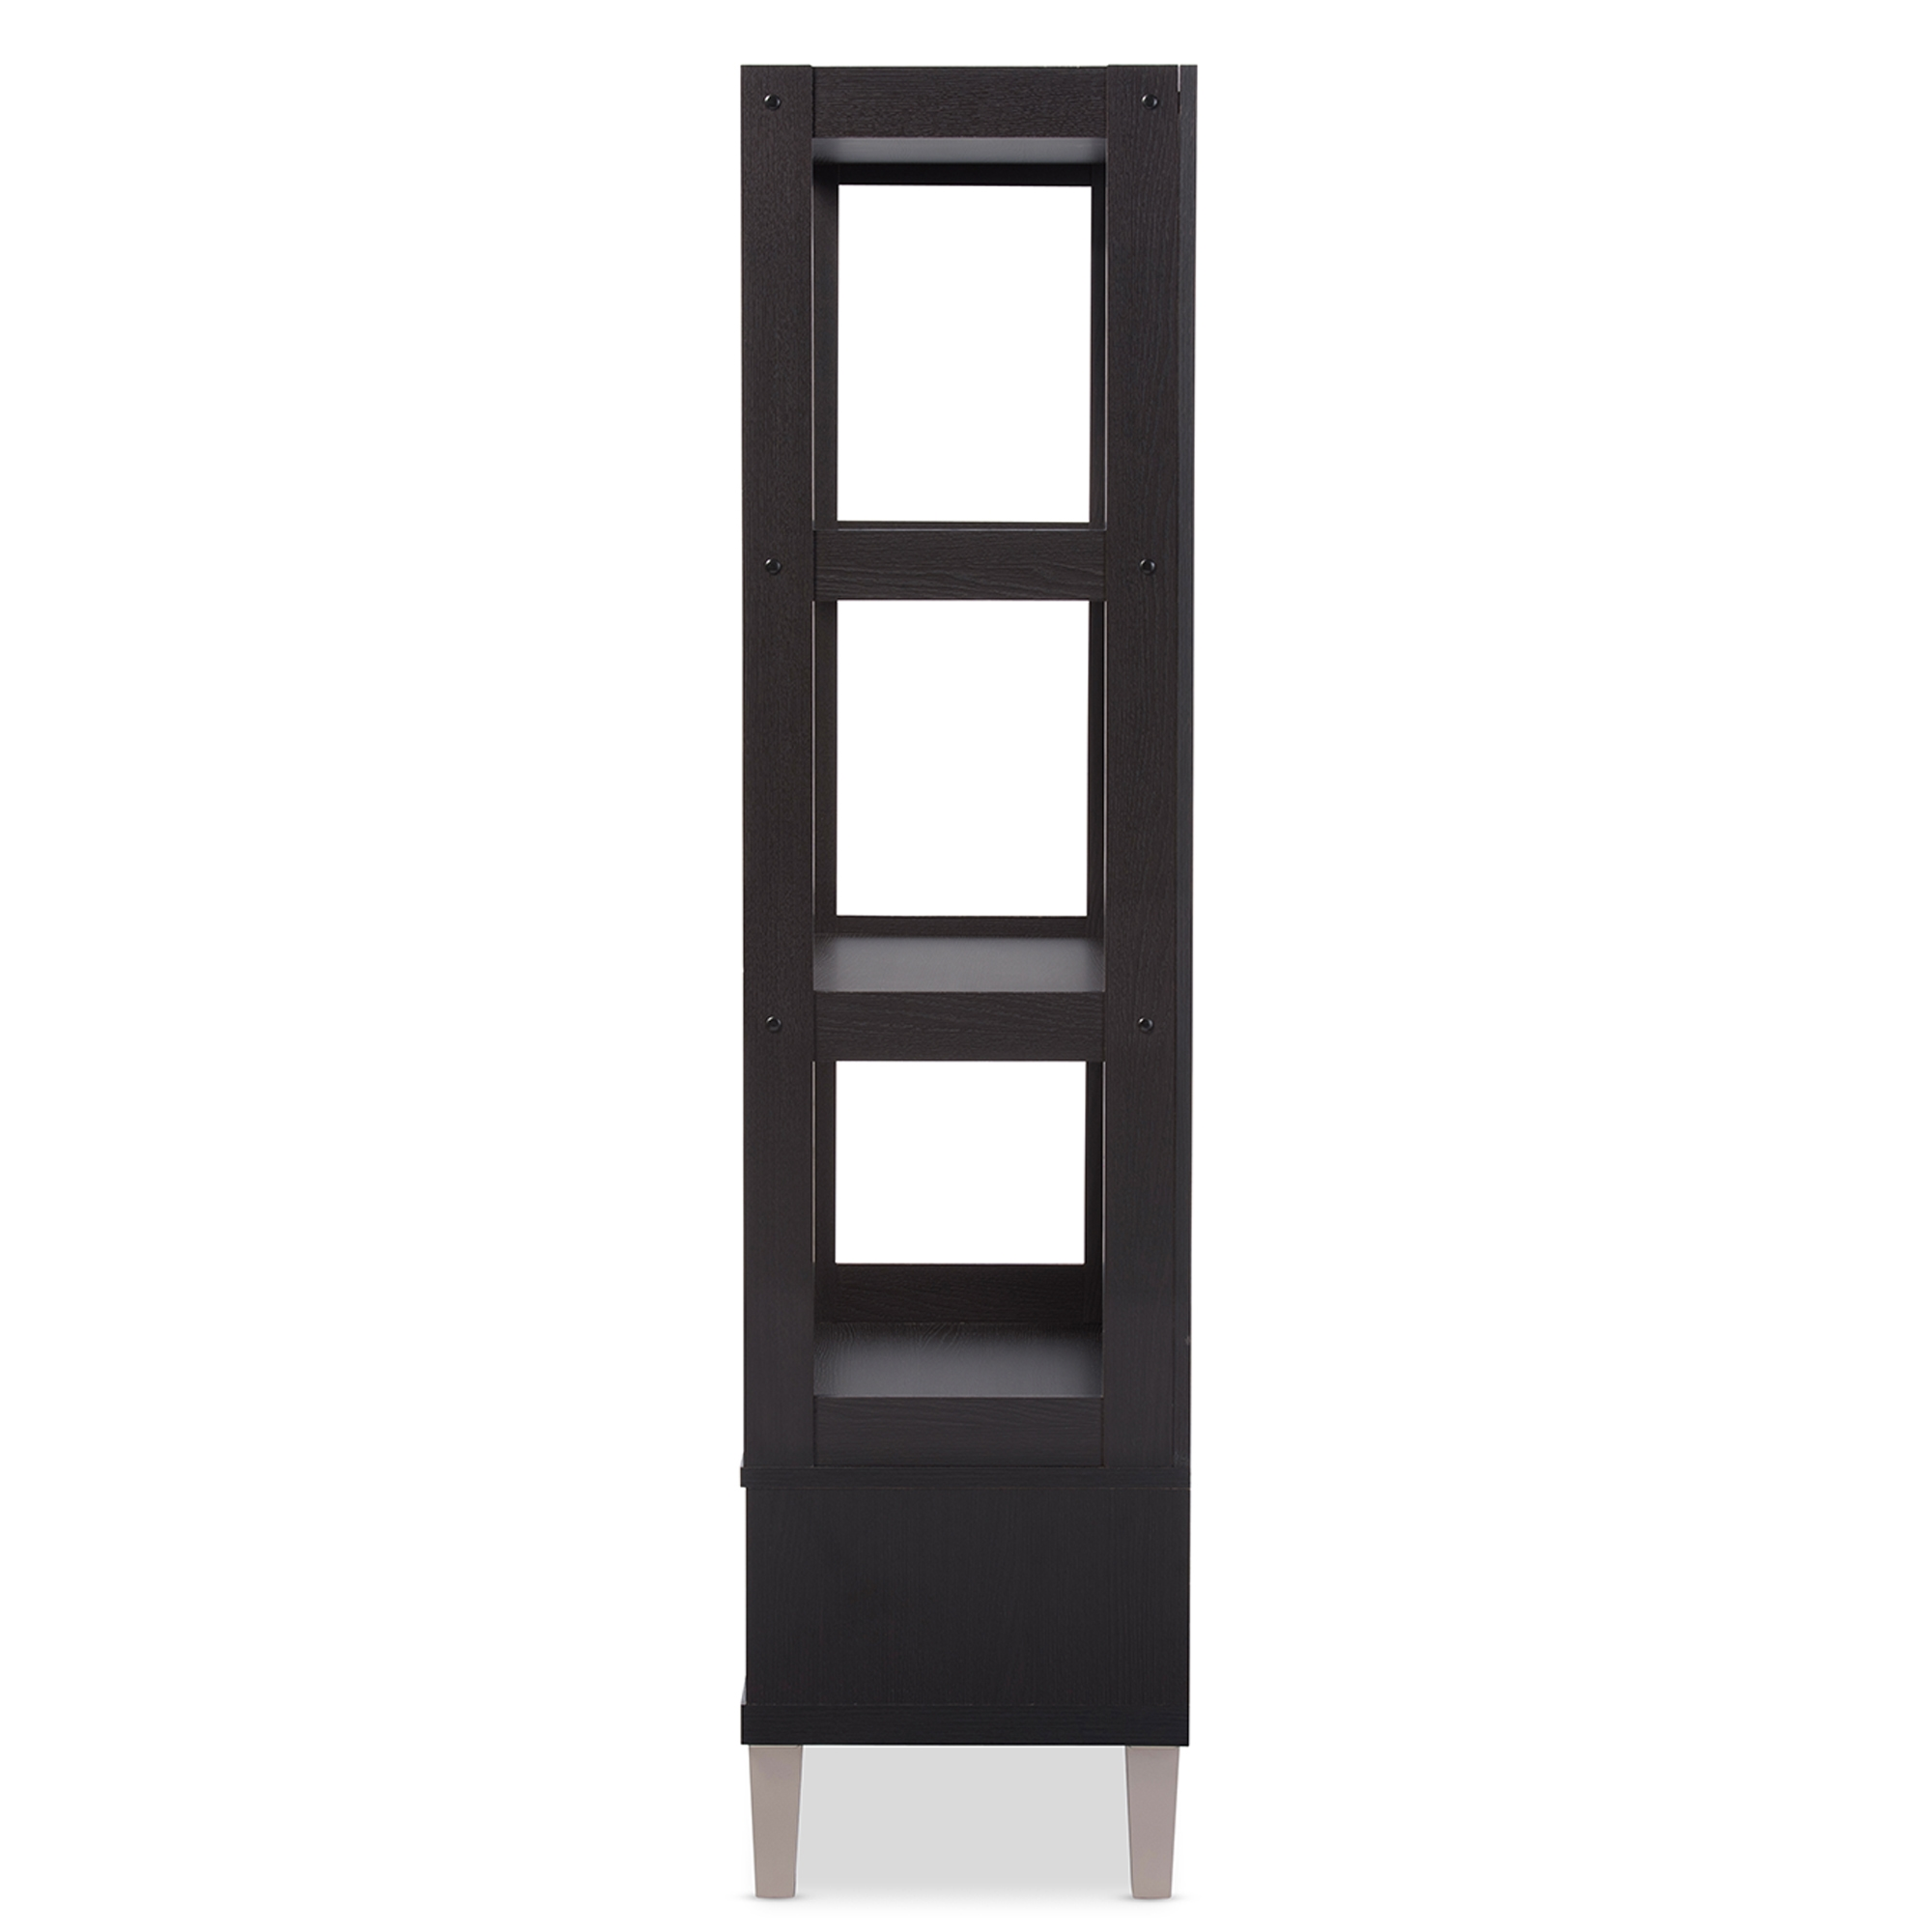 baxton studio kalien modern and dark brown wood leaning bookcase with display shelves and two